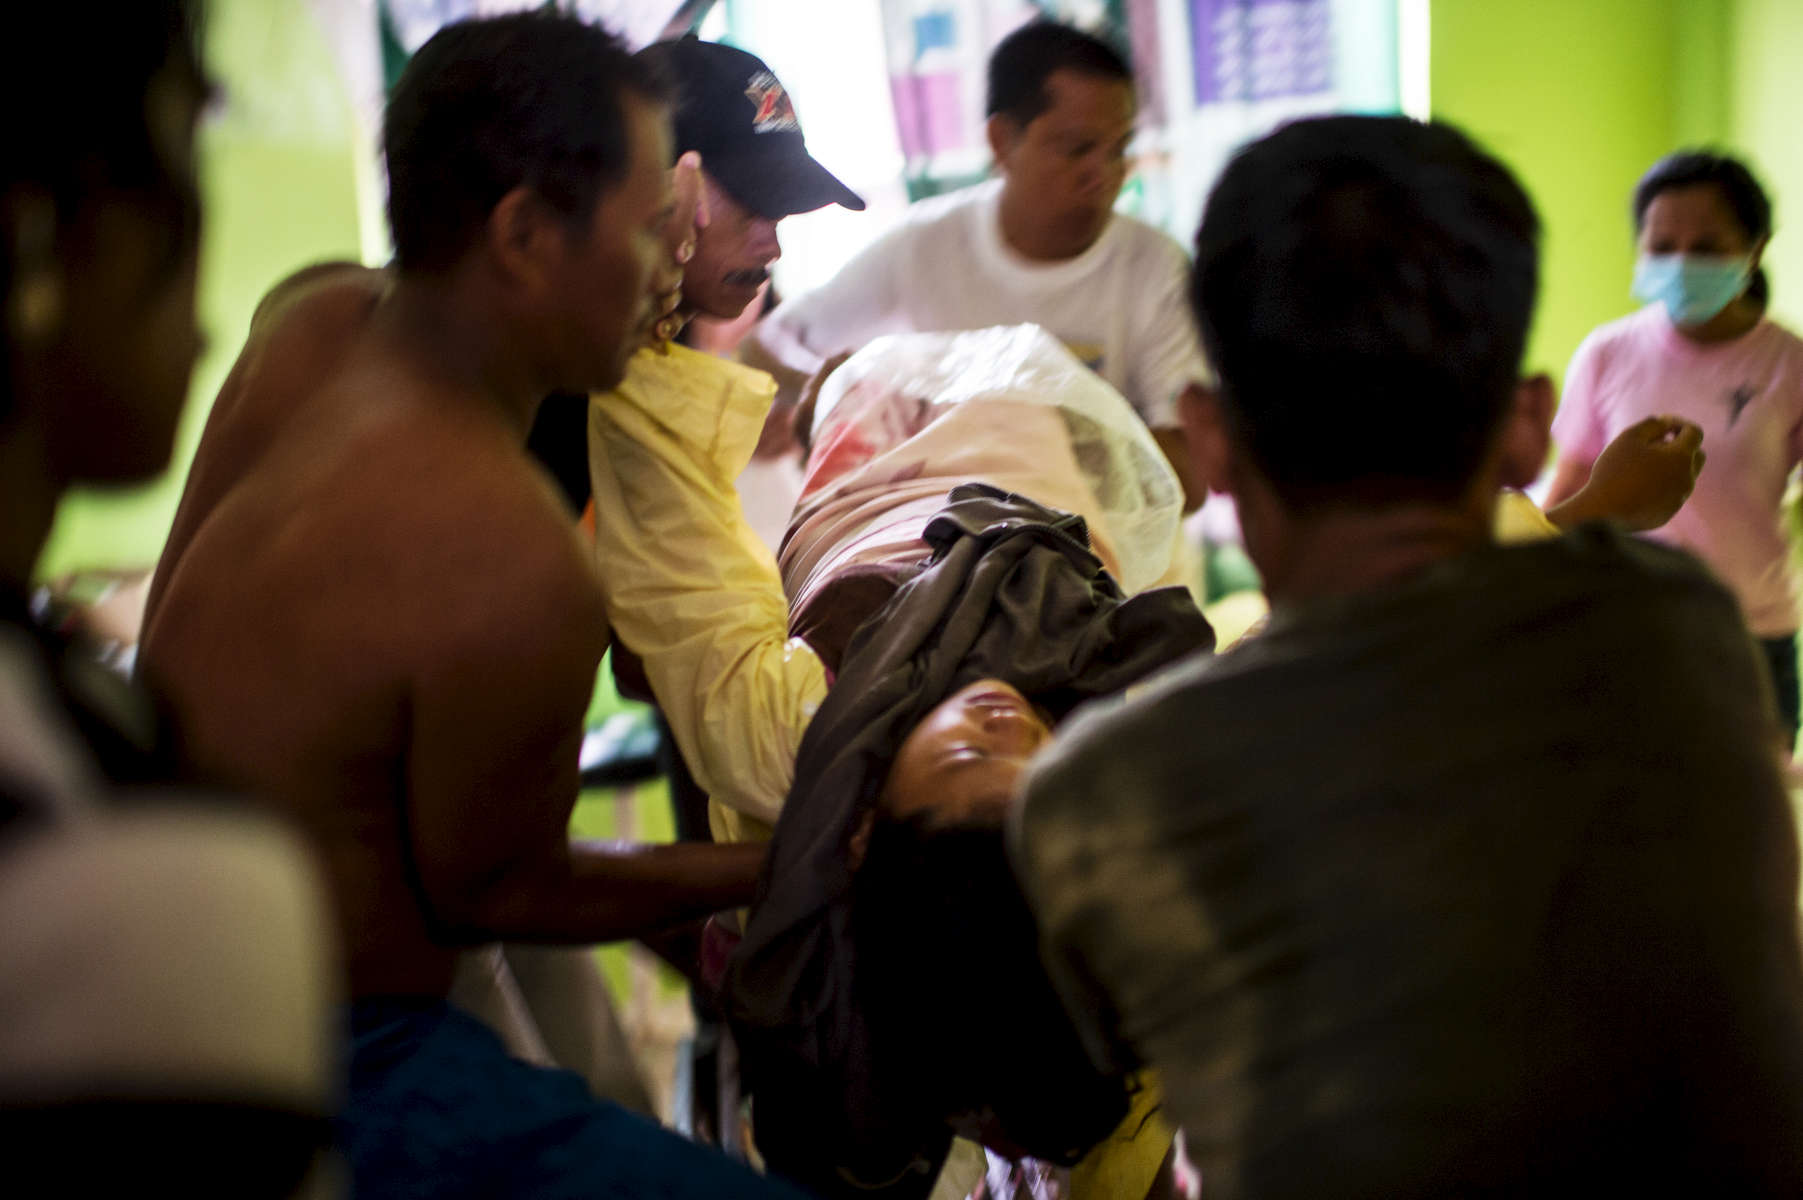 Midwife Norena Malate delivers the baby of Analyn Pleado, 18, as Analyn's husband, Ryan Bacate, 21, looks on on the side of the road en route to the rural health unit in Tolosa, outside of Tacloban, in the Philippines, Januray 11, 2014. During Typhoon Haiyan, the couple's house was destroyed, and they were displaced to a more remote village of Tabon. Analyn feared after the typhoon that she wouldn't find a place to deliver. 'All the clinics and Barangay health stations were destroyed.'  She had gone into labor the evening before, but because it was raining, and dark, she waited until the morning to travel by motorcycle with her husband to the nearest clinic with a midwife in Tolosa.  A stranger passing by witnessed Analyn in labor on the side of the road, and went to bring the midwife.  Typhoon Hayien hit the Philippines on November 8, 2013, and killed some six thousand people, and affected some 14.1 million others, destroying their homes, livelihoods, and displacing families.  There are currently over 250,000 pregnant women in the affected area, with much of the medical infrastructure destroyed. (Credit: Lynsey Addario, for Save the Children)